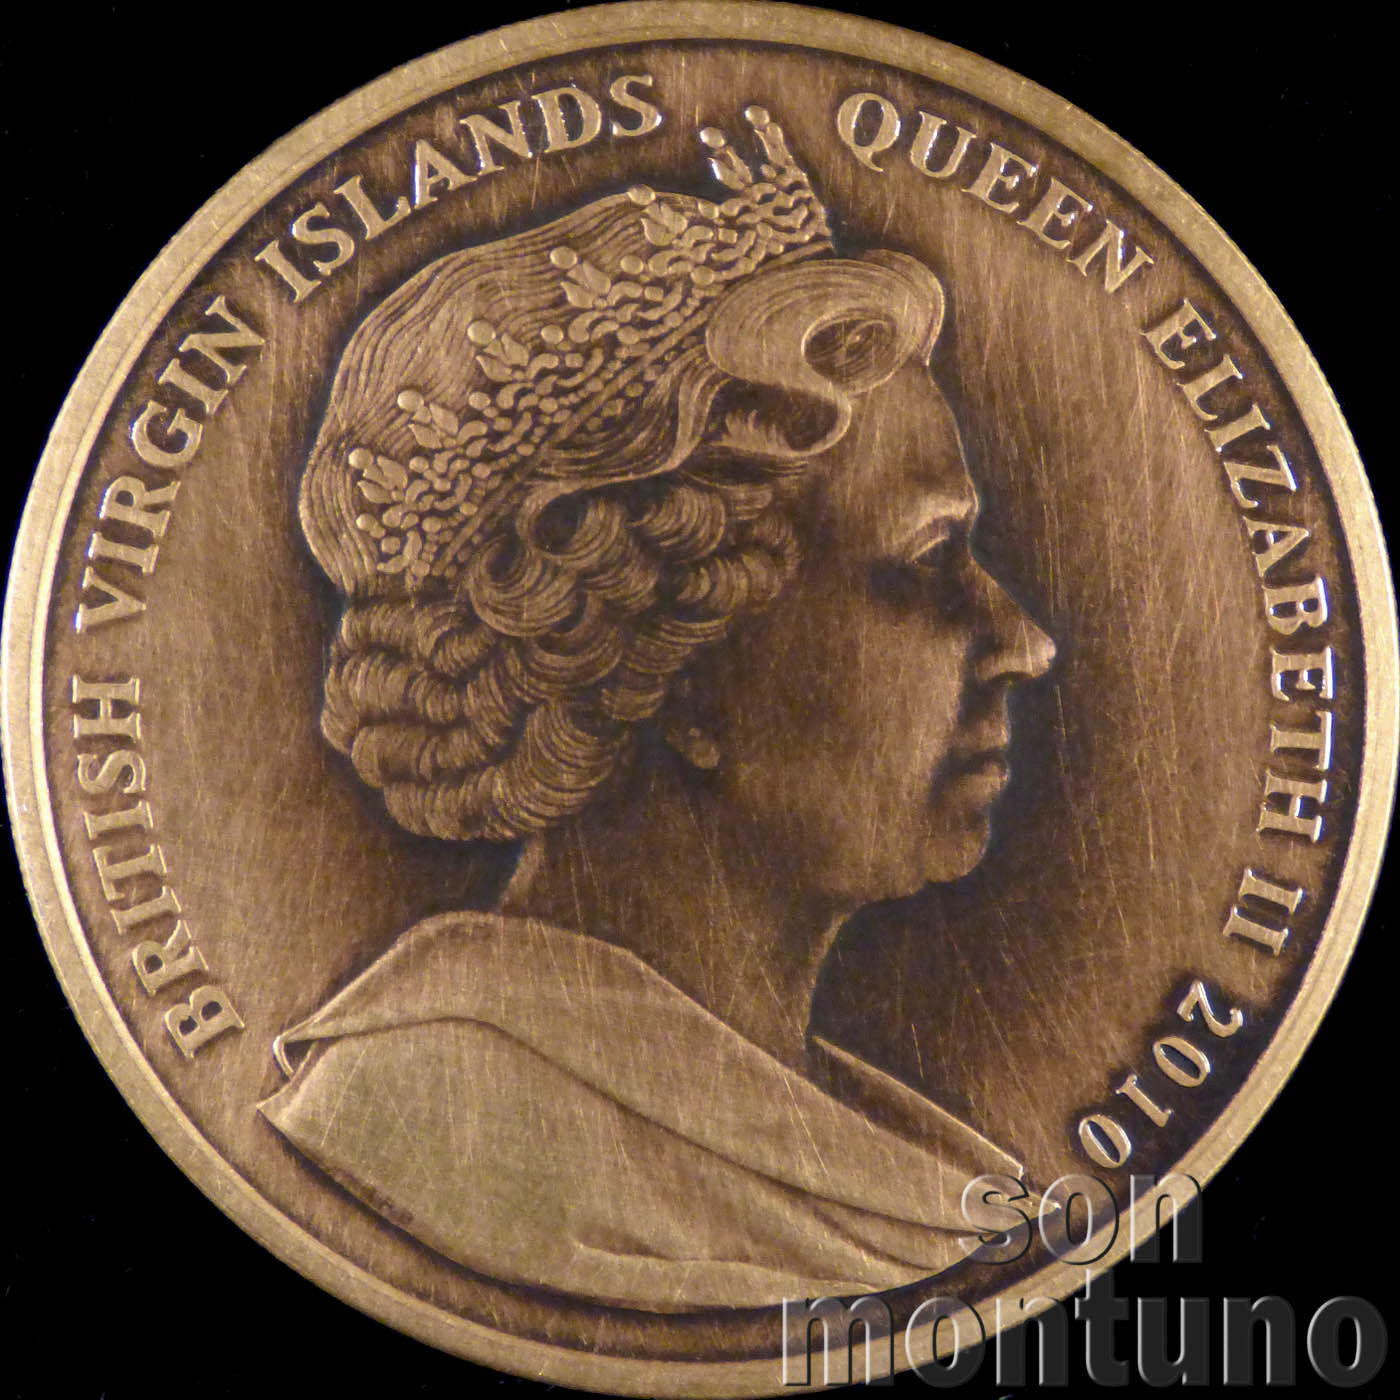 2017 British Virgin Islands $1 US Capitol Building Shaped coin